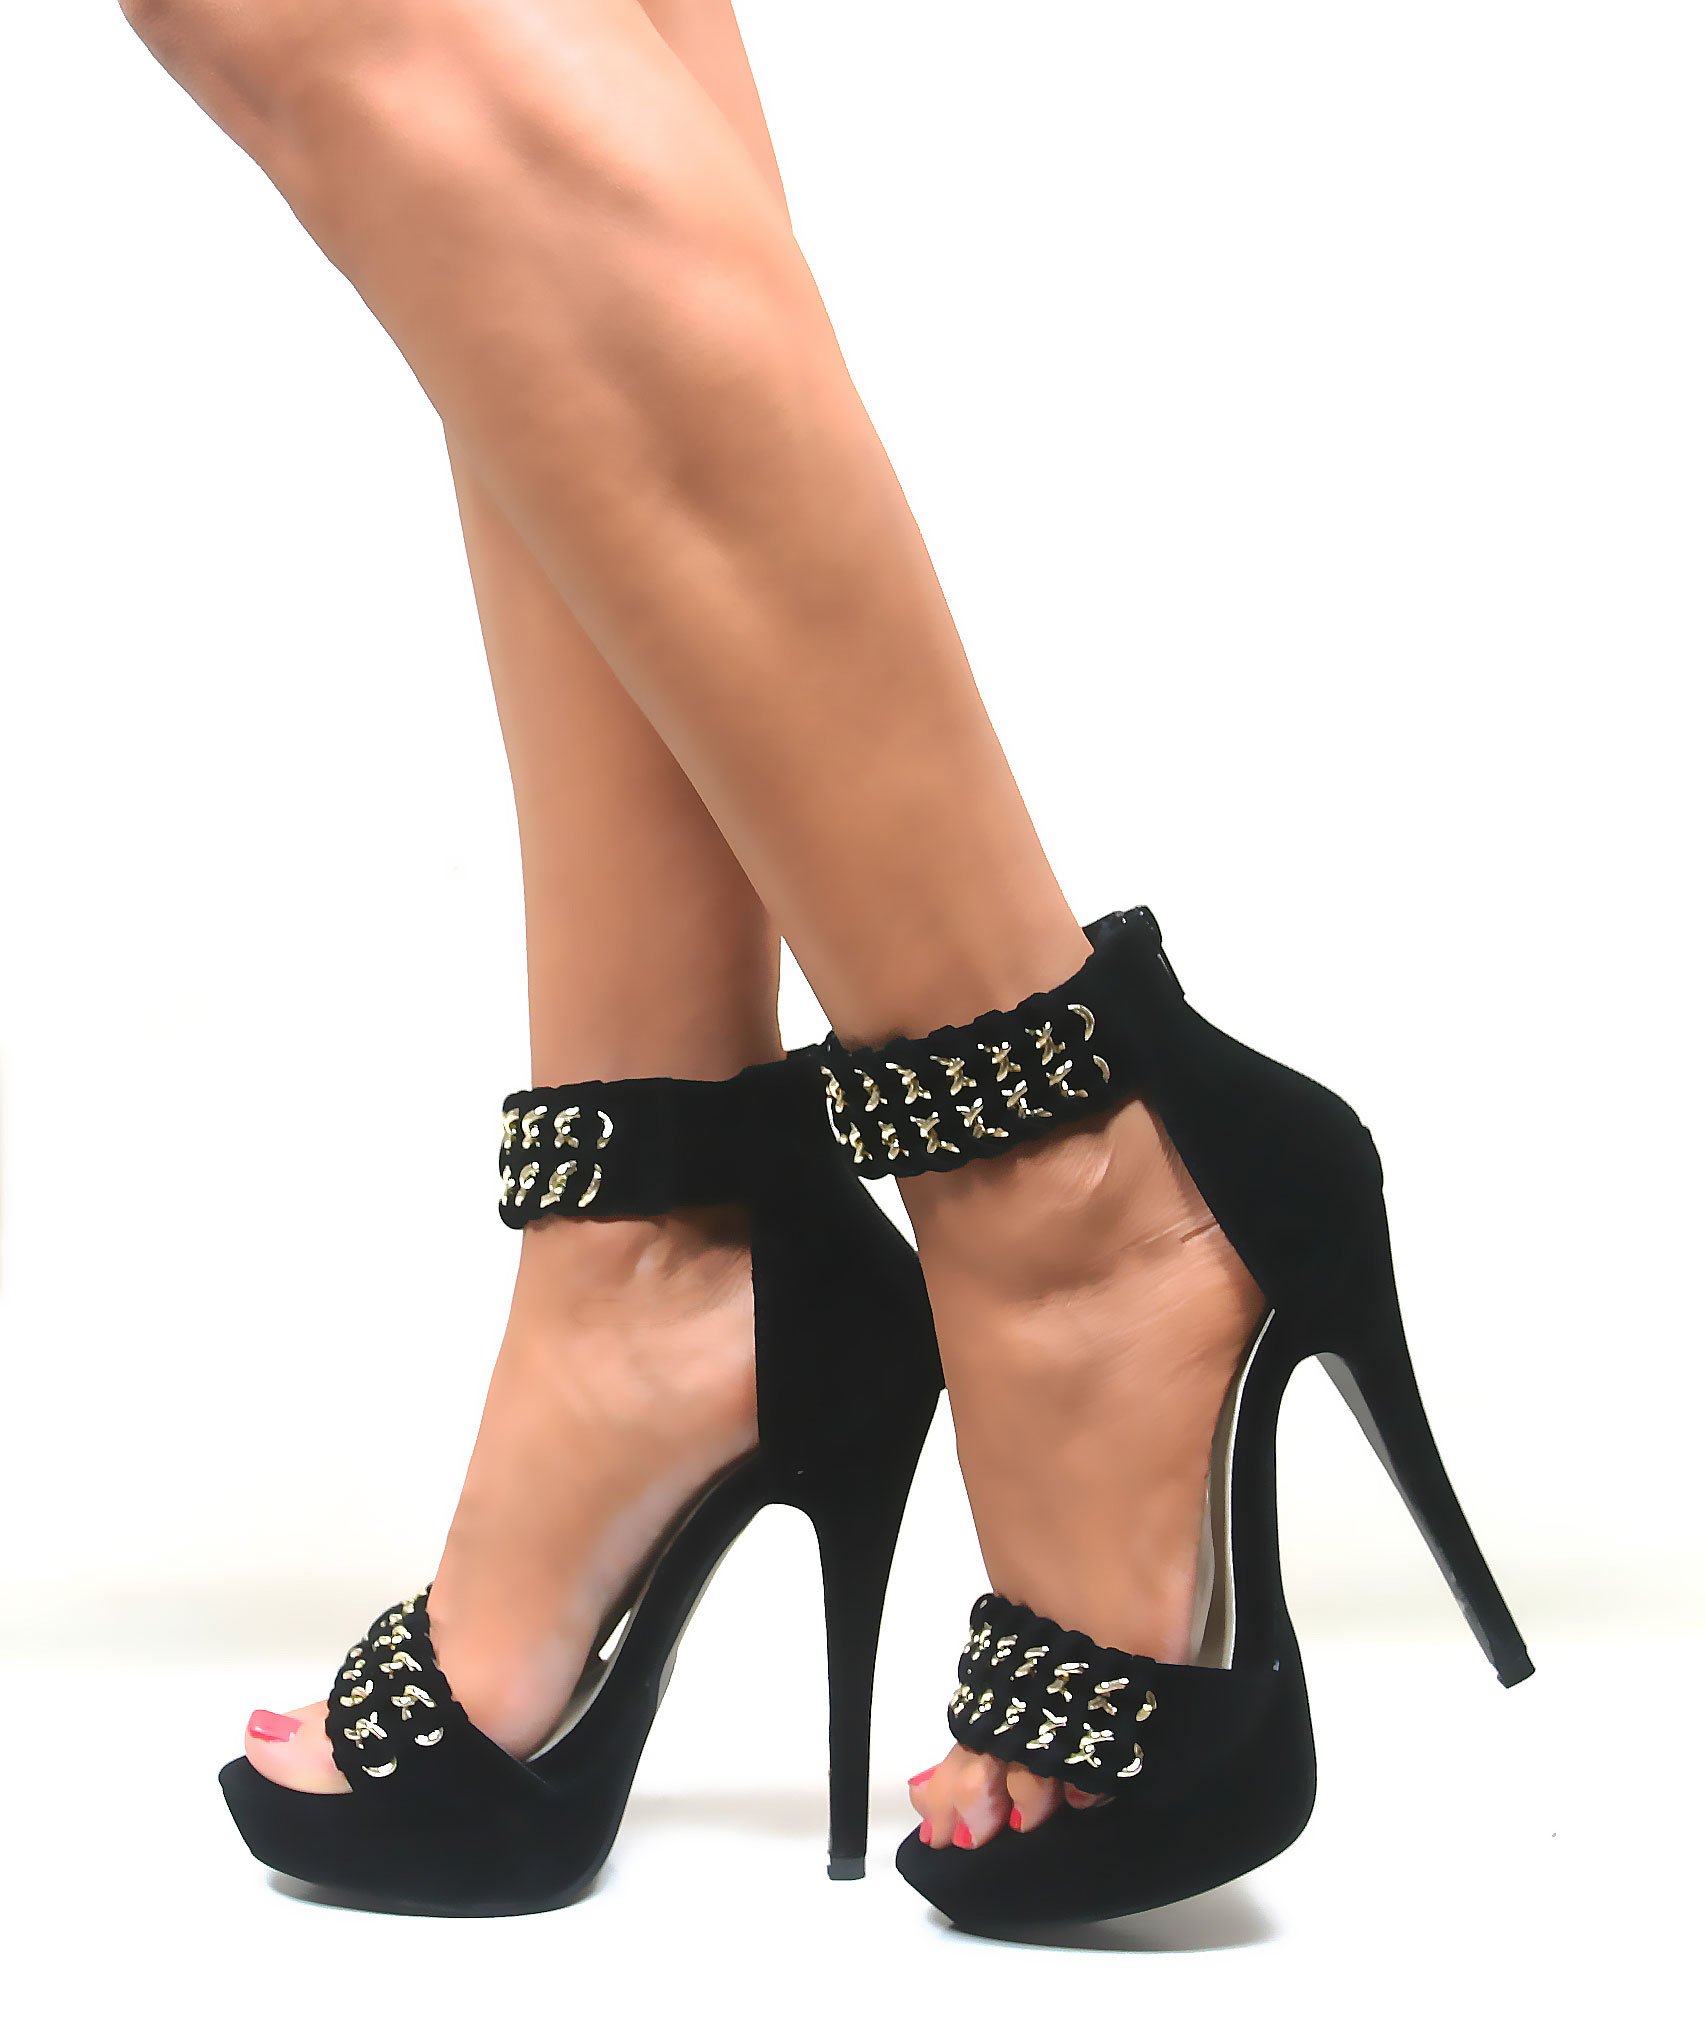 Find great deals on eBay for ankle cuff high heels. Shop with confidence.